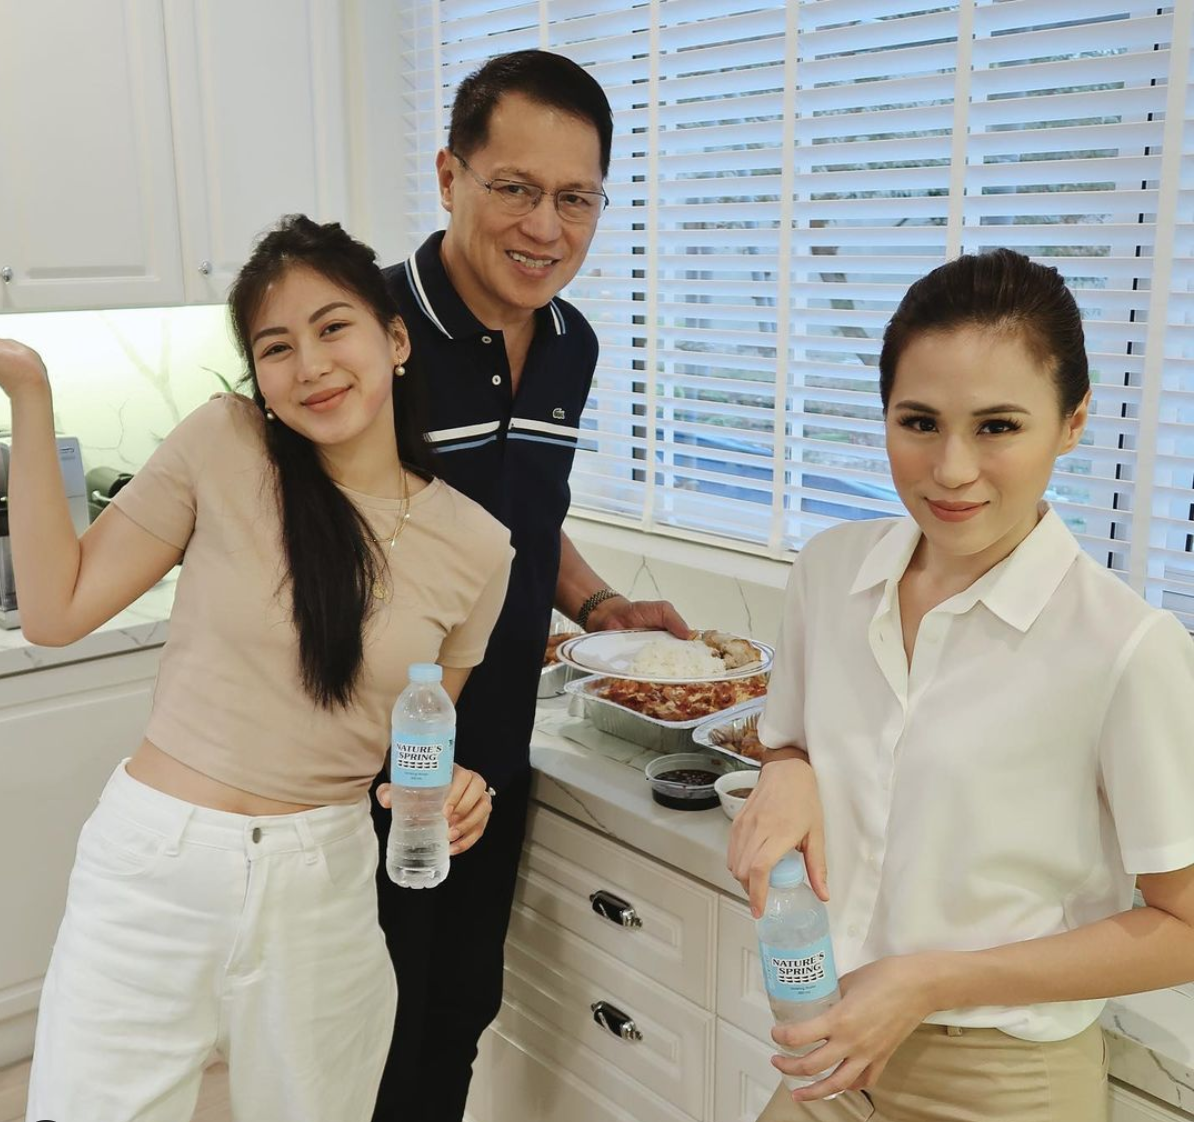 Gonzaga Sisters sing the praises of water for health and beauty